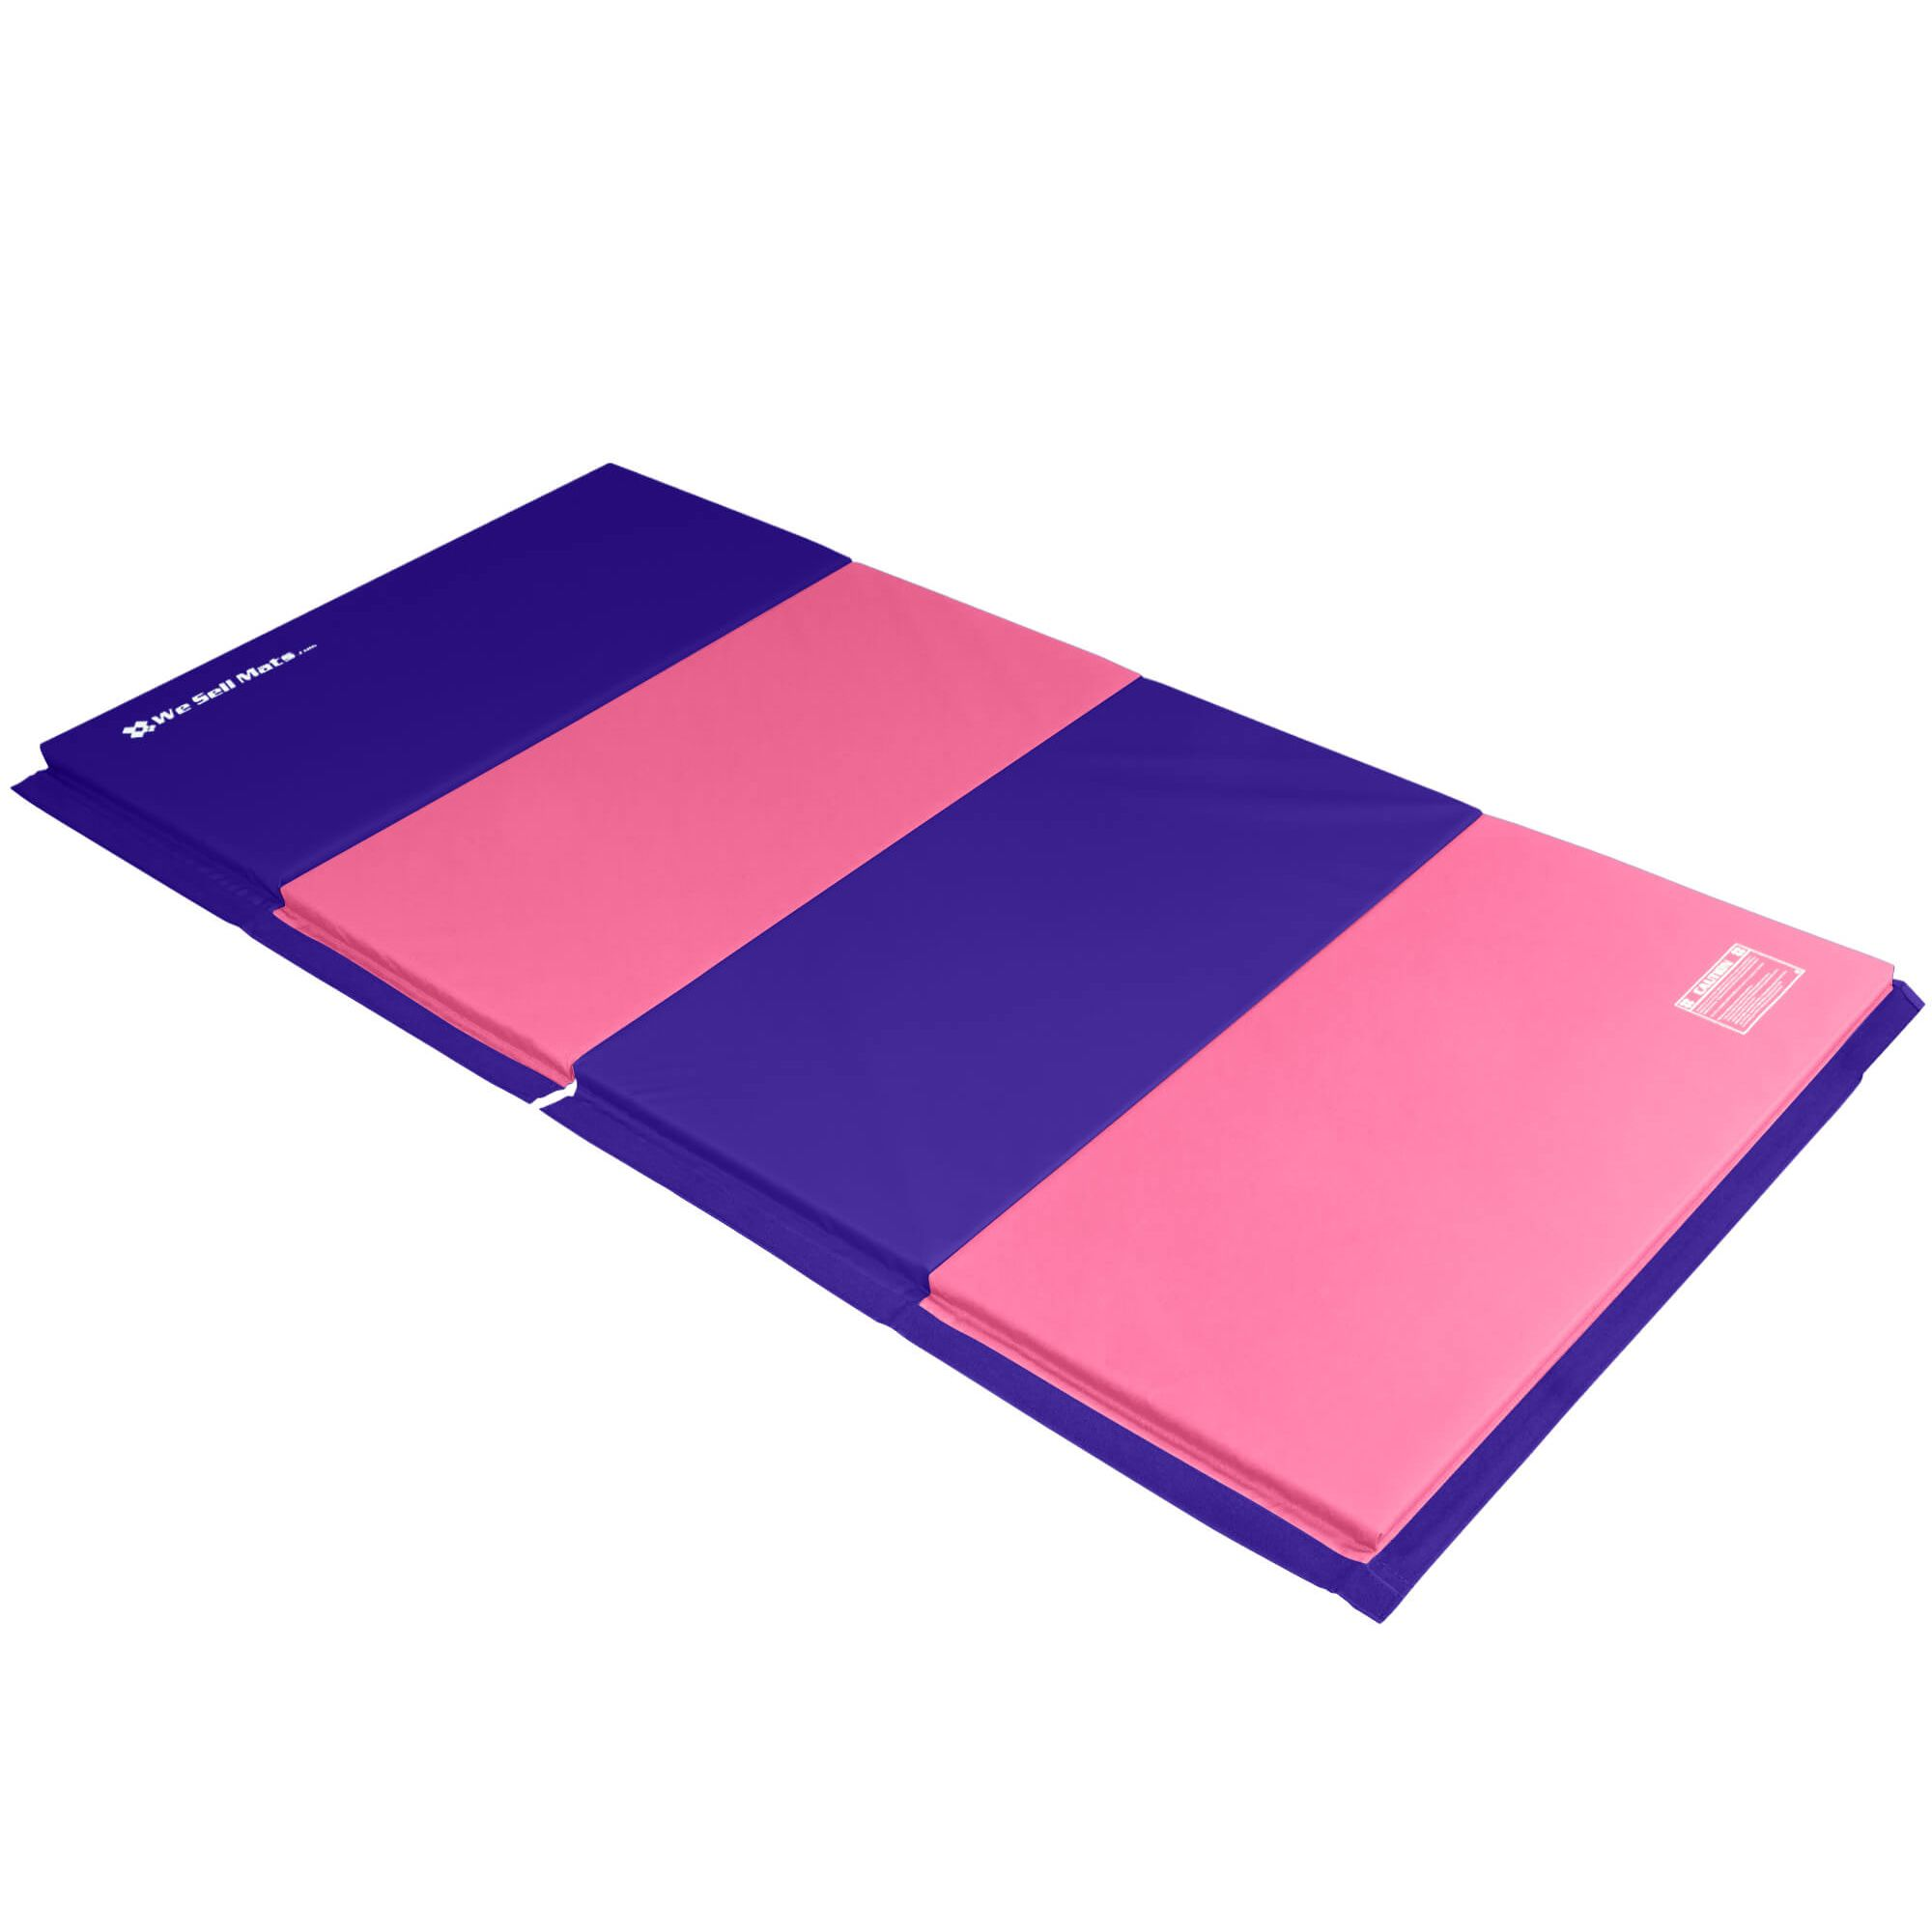 4 X 8 Gymnastics Tumbling Mat 11 Color Options In 2020 Gymnastics Tumbling Mat Tumble Mats Gymnastics Mats